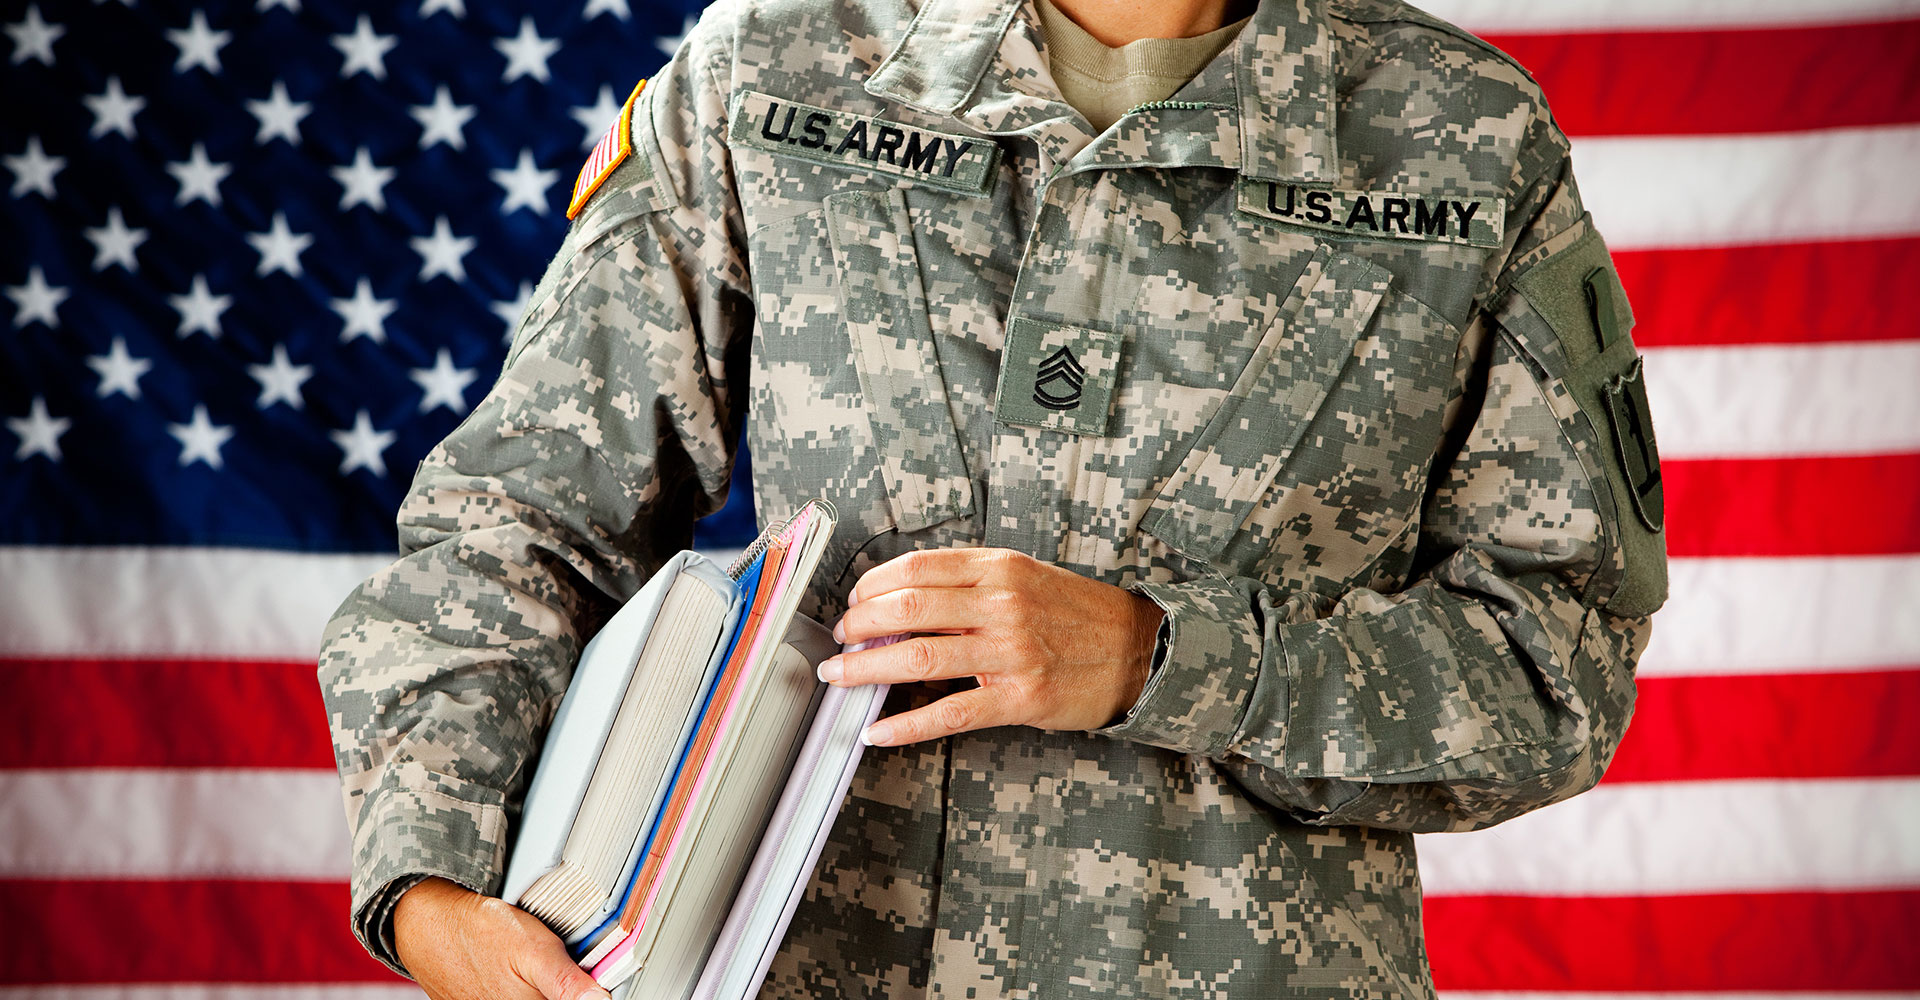 Created specifically for returning WWII veterans, the GI Bill provides tuition expense benefits for service members to attend a college or vocational/technical school.